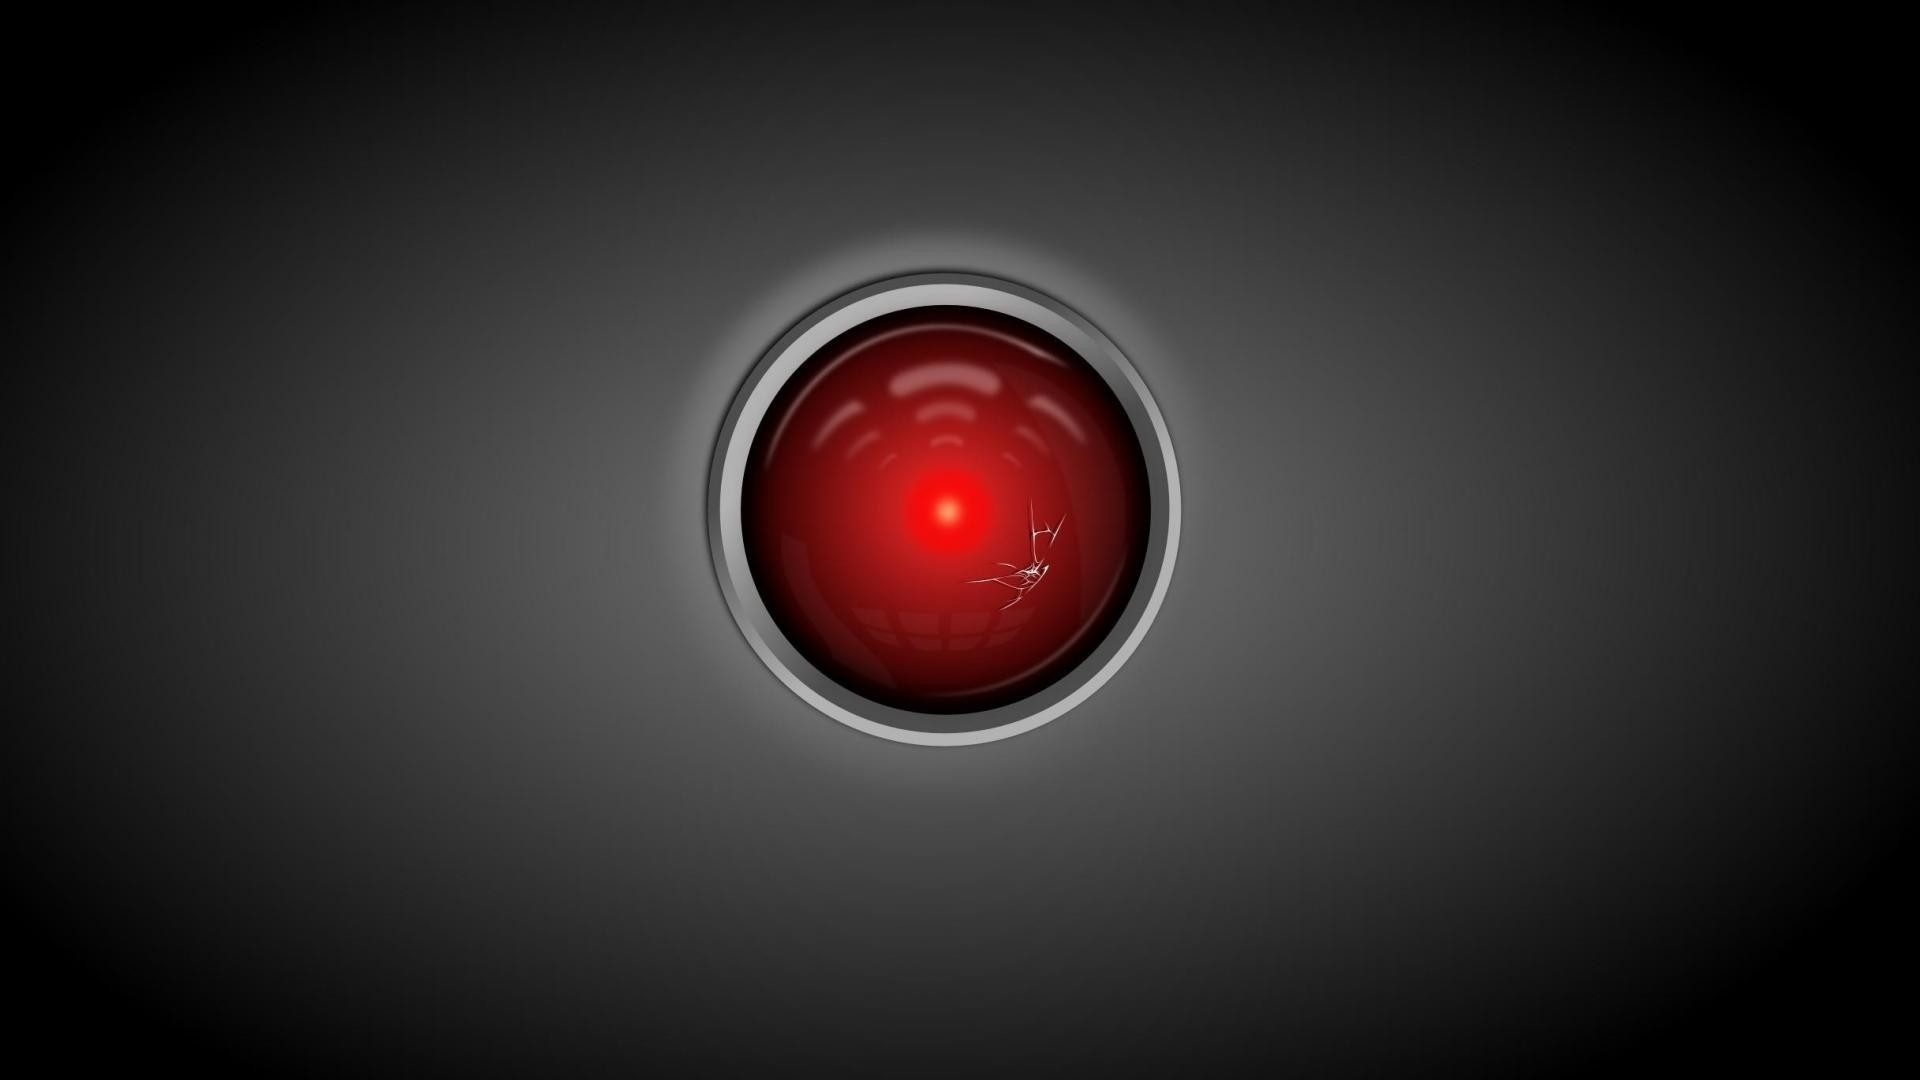 Res: 1920x1080, Title : hal 9000 hd wallpaper (76+ images) Dimension : 1920 x 1080. File  Type : JPG/JPEG